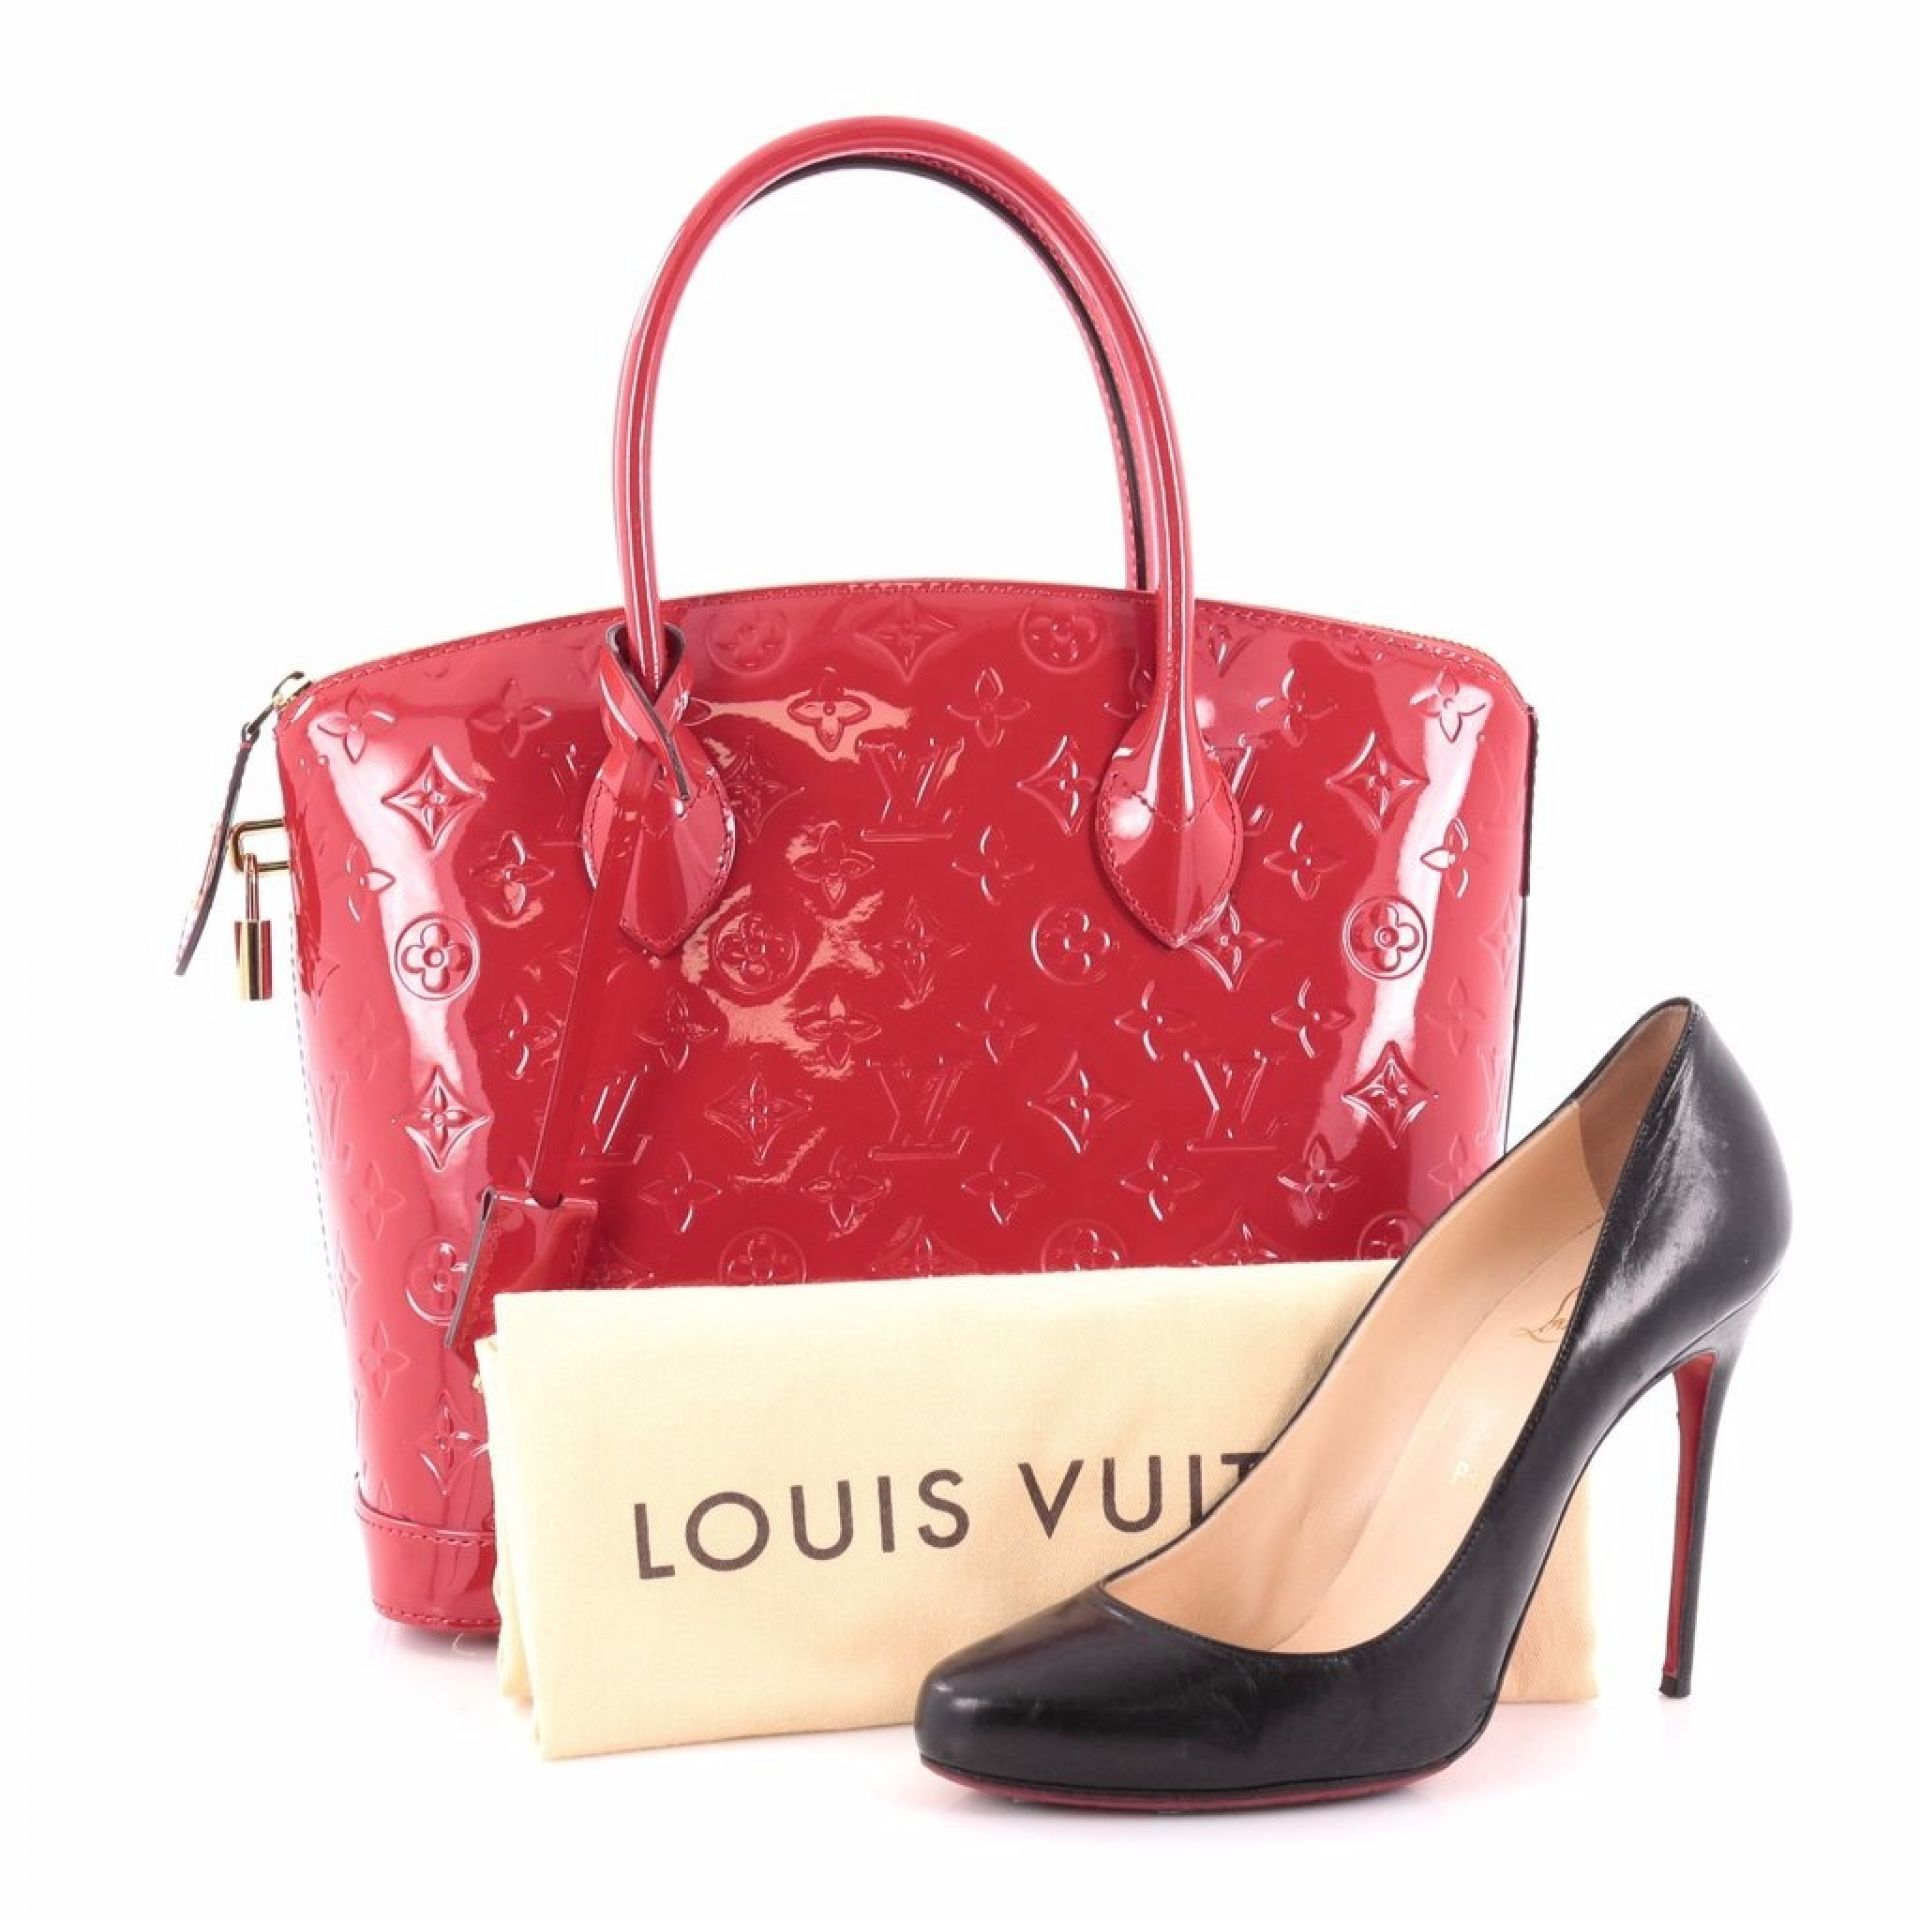 Louis Vuitton Lockit Handbag Monogram Vernis PM